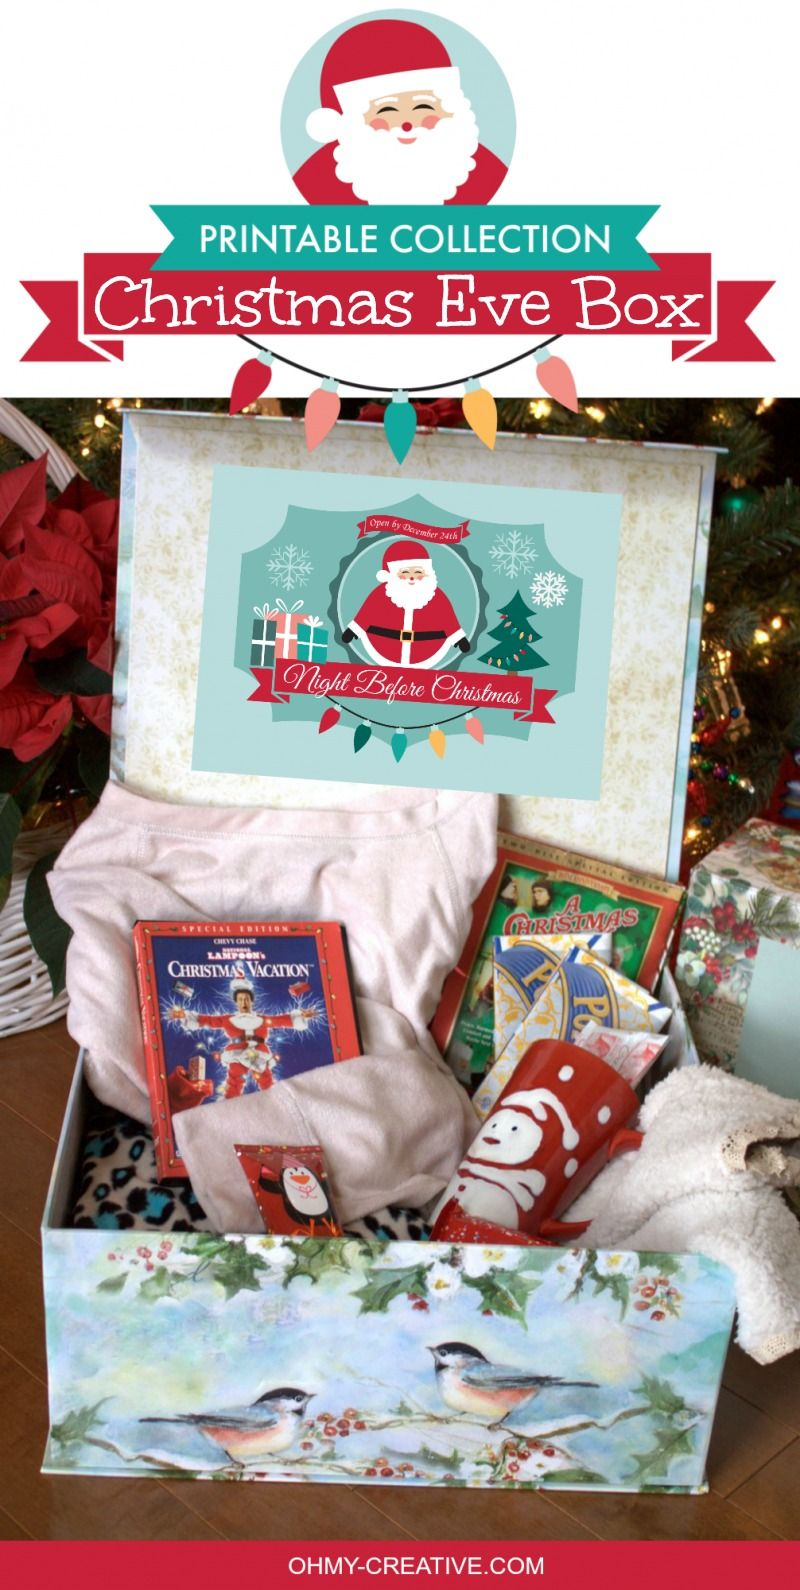 christmas eve box printables ohmy creativecom christmas eve gift box christmas eve gift box ideas christmas eve traditions the night before